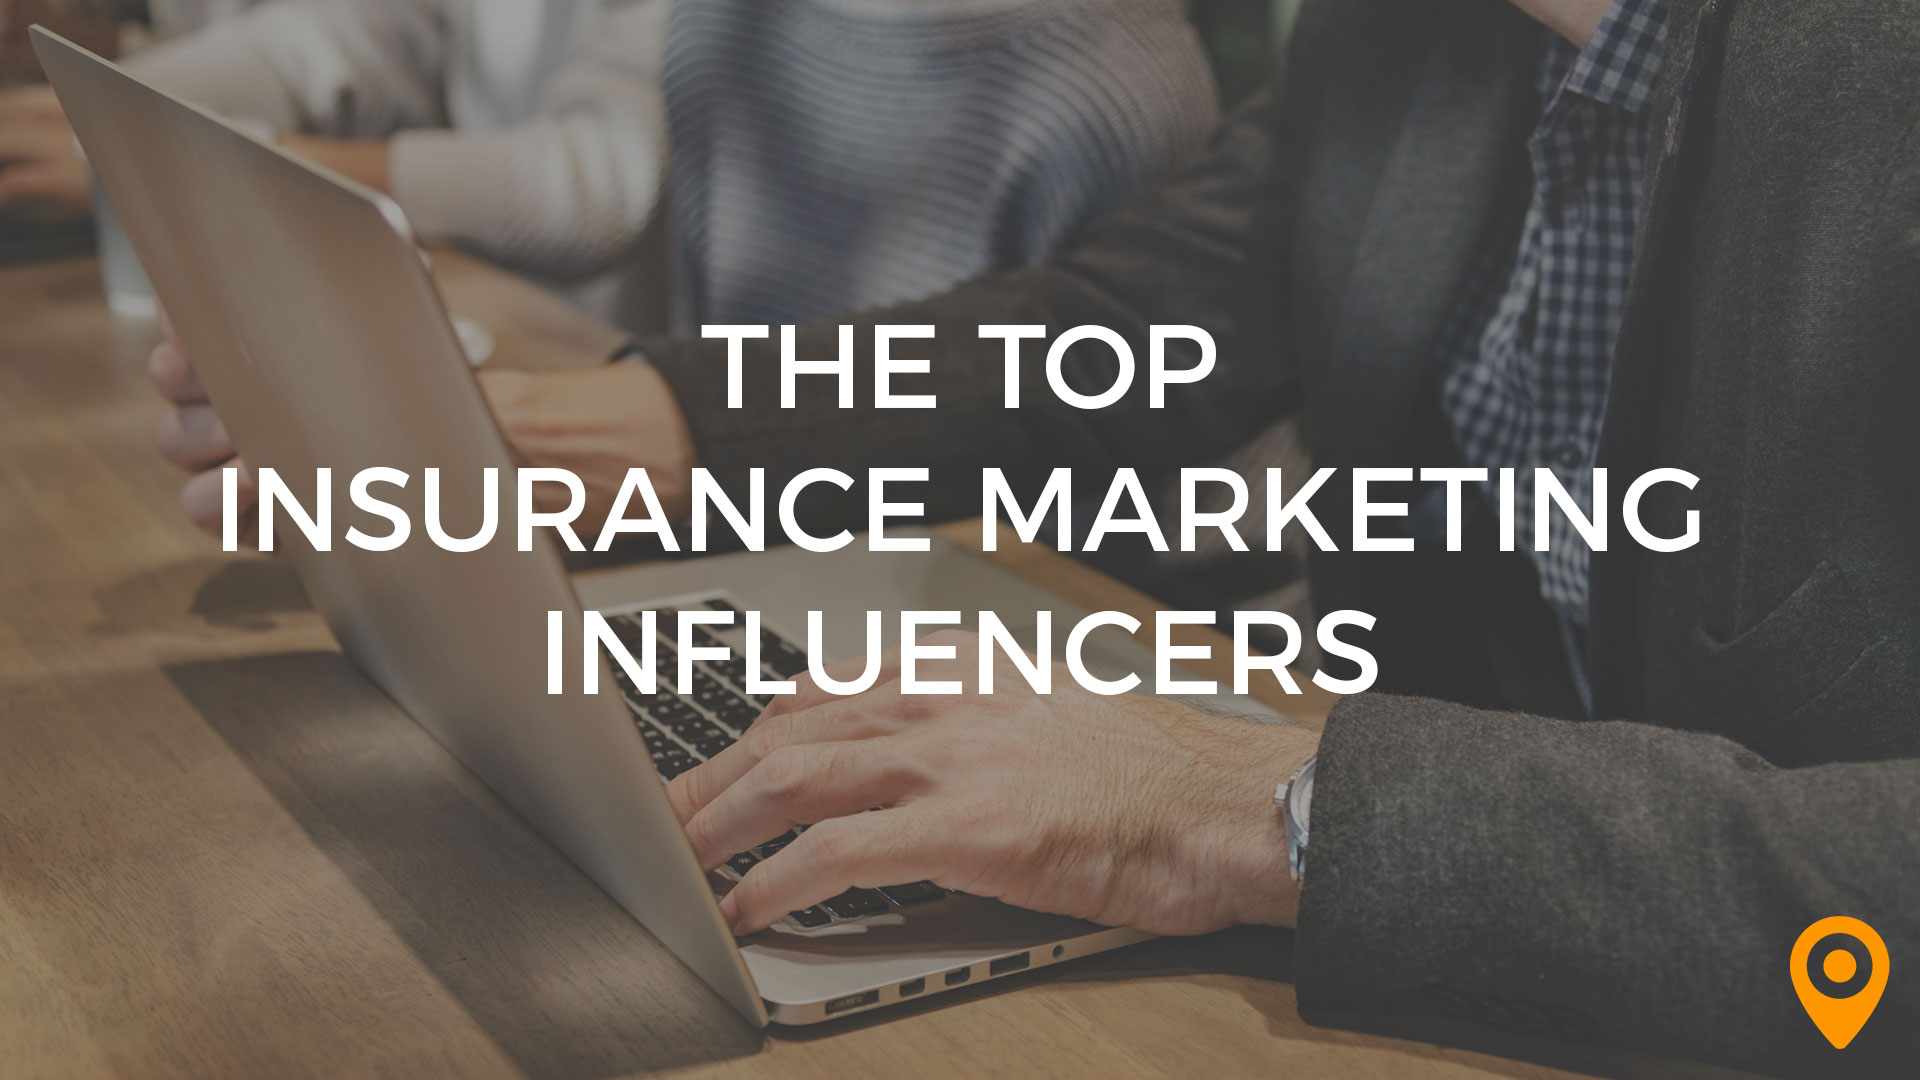 Top Insurance Marketing Influencers